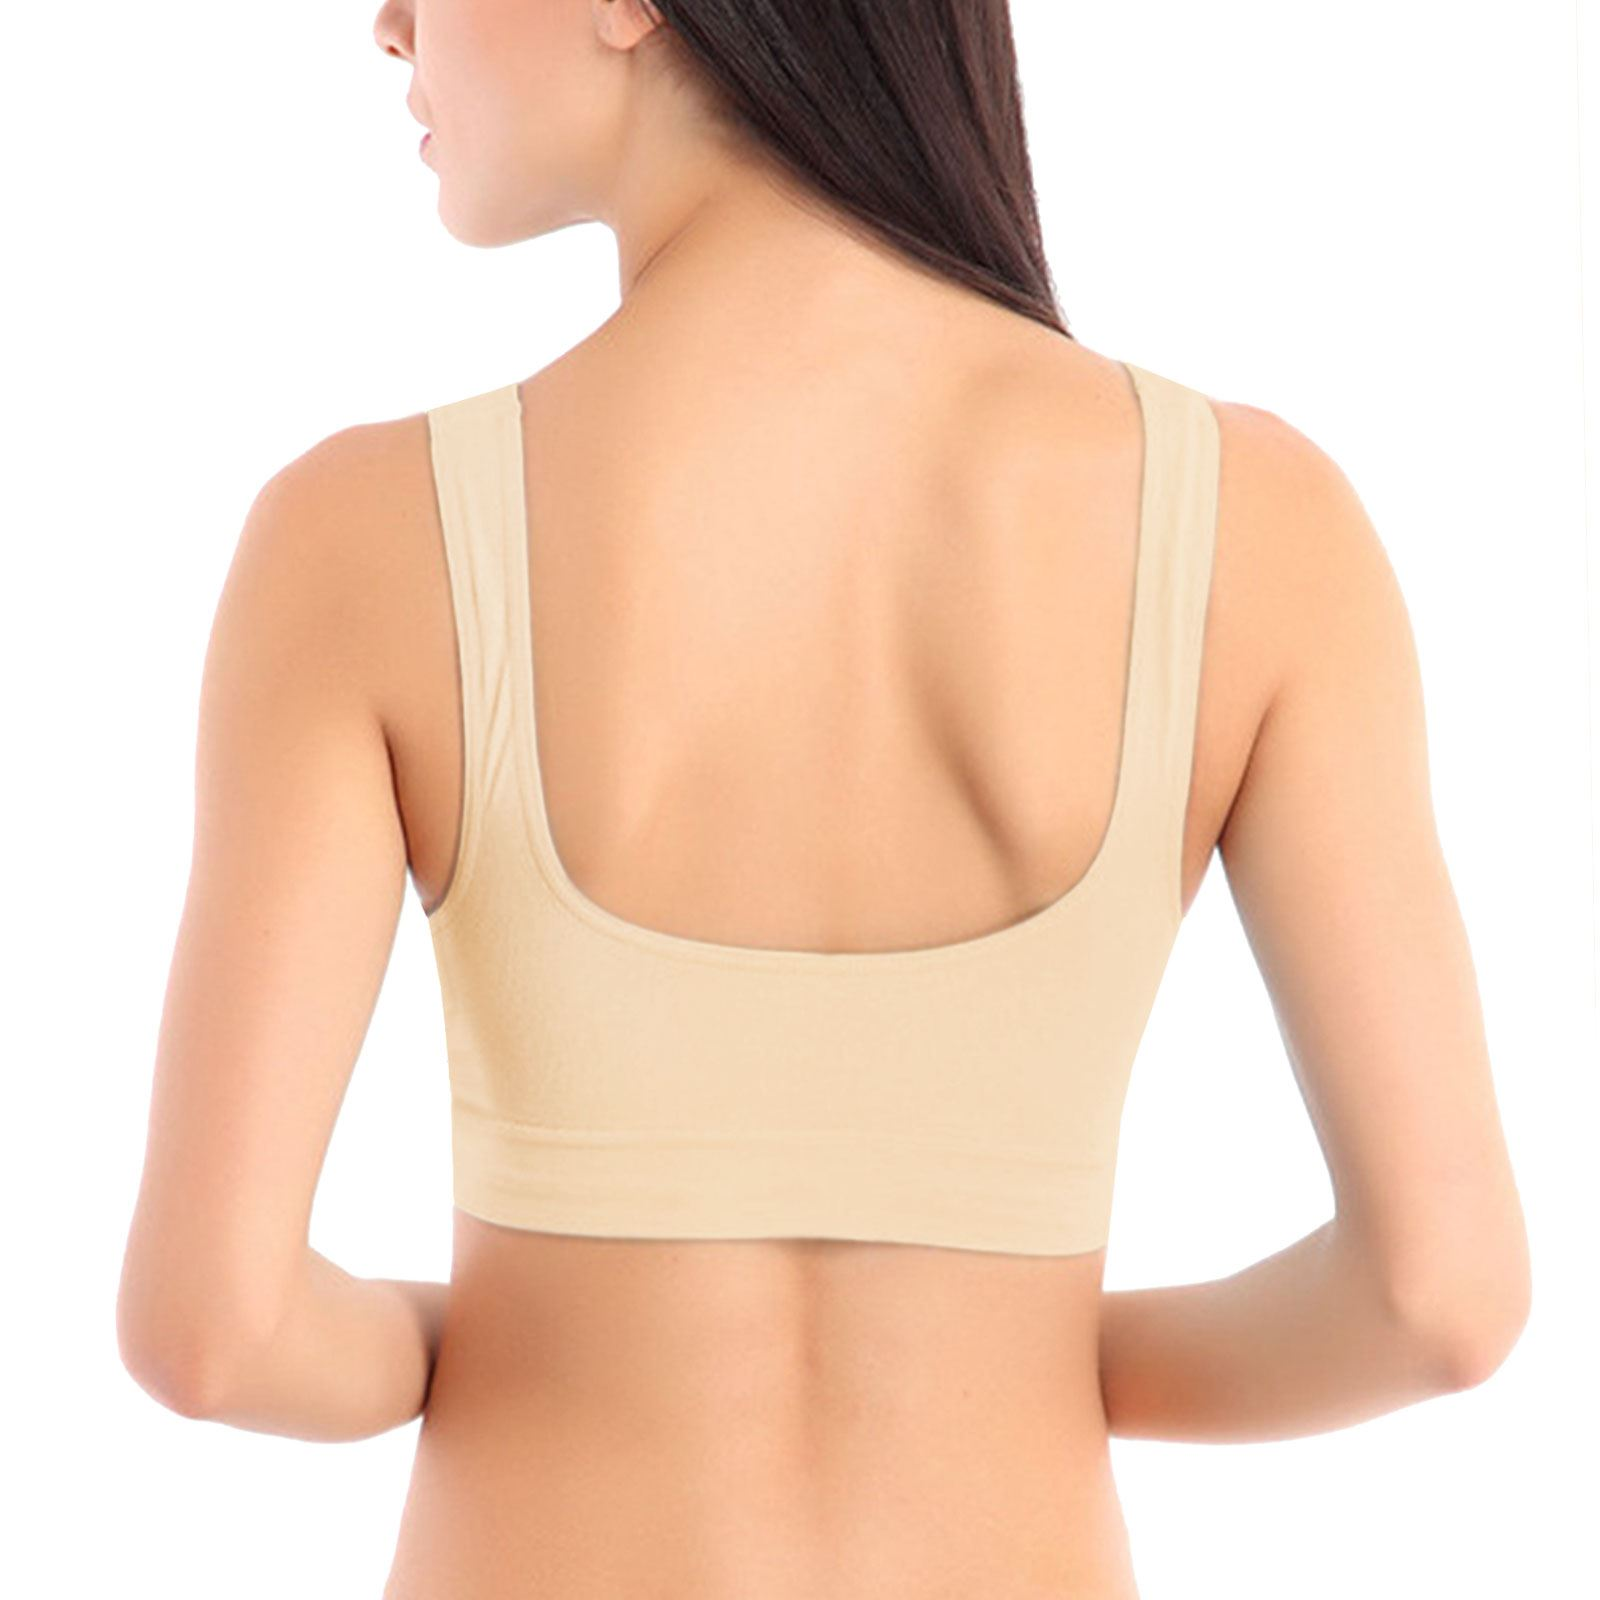 932e7a56e9 Non-padded Womens Ladies Seamless Bra Sports Leisure Crop Top Vest ...